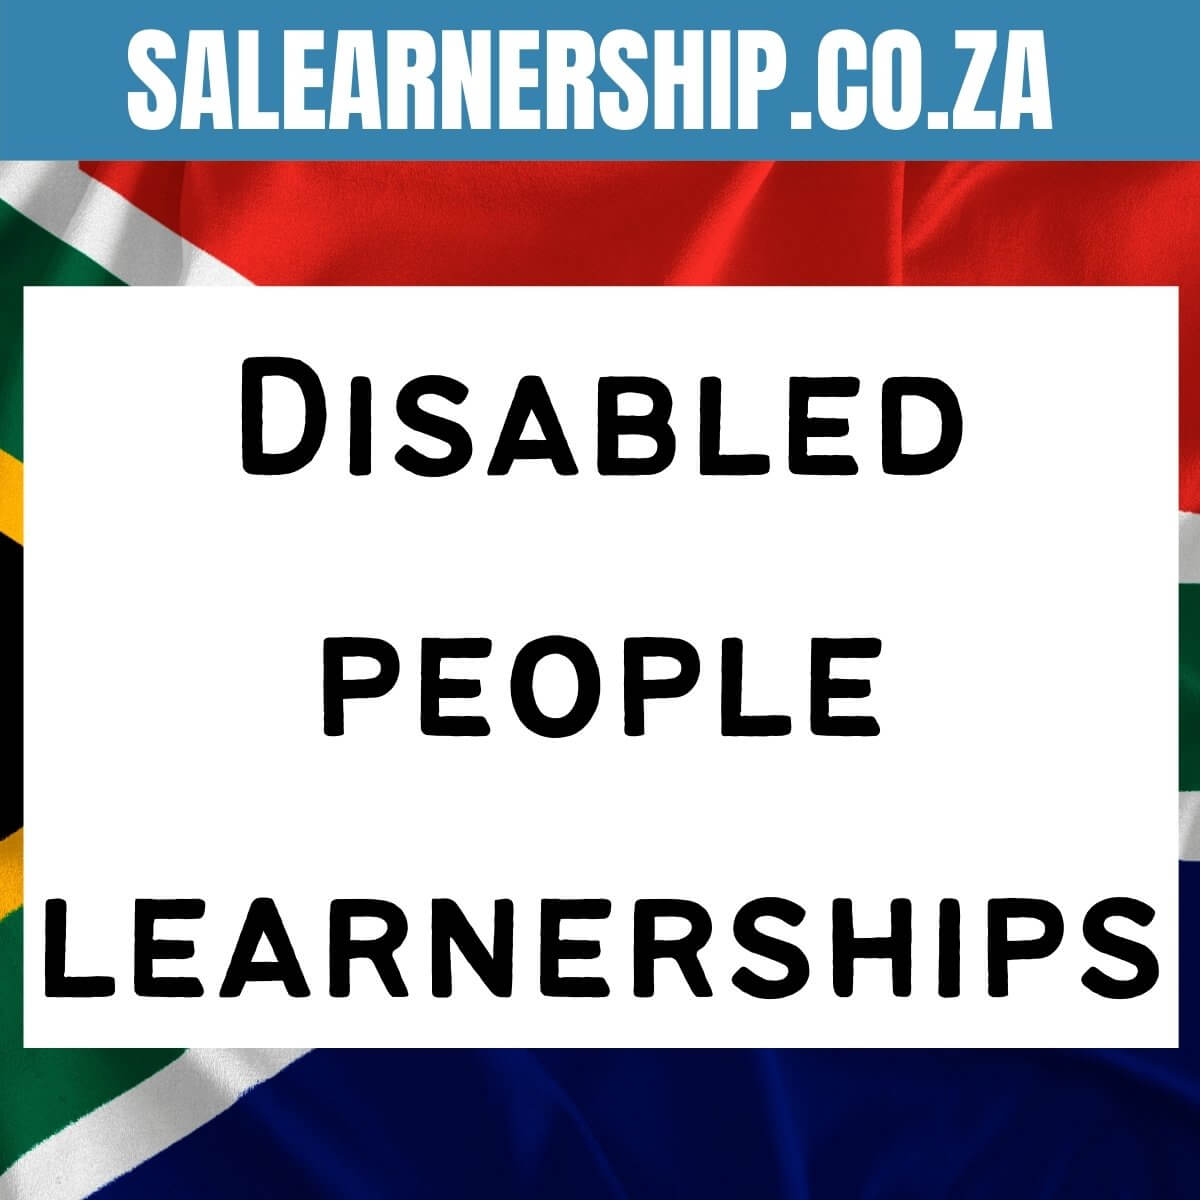 Learnerships for Disabled People